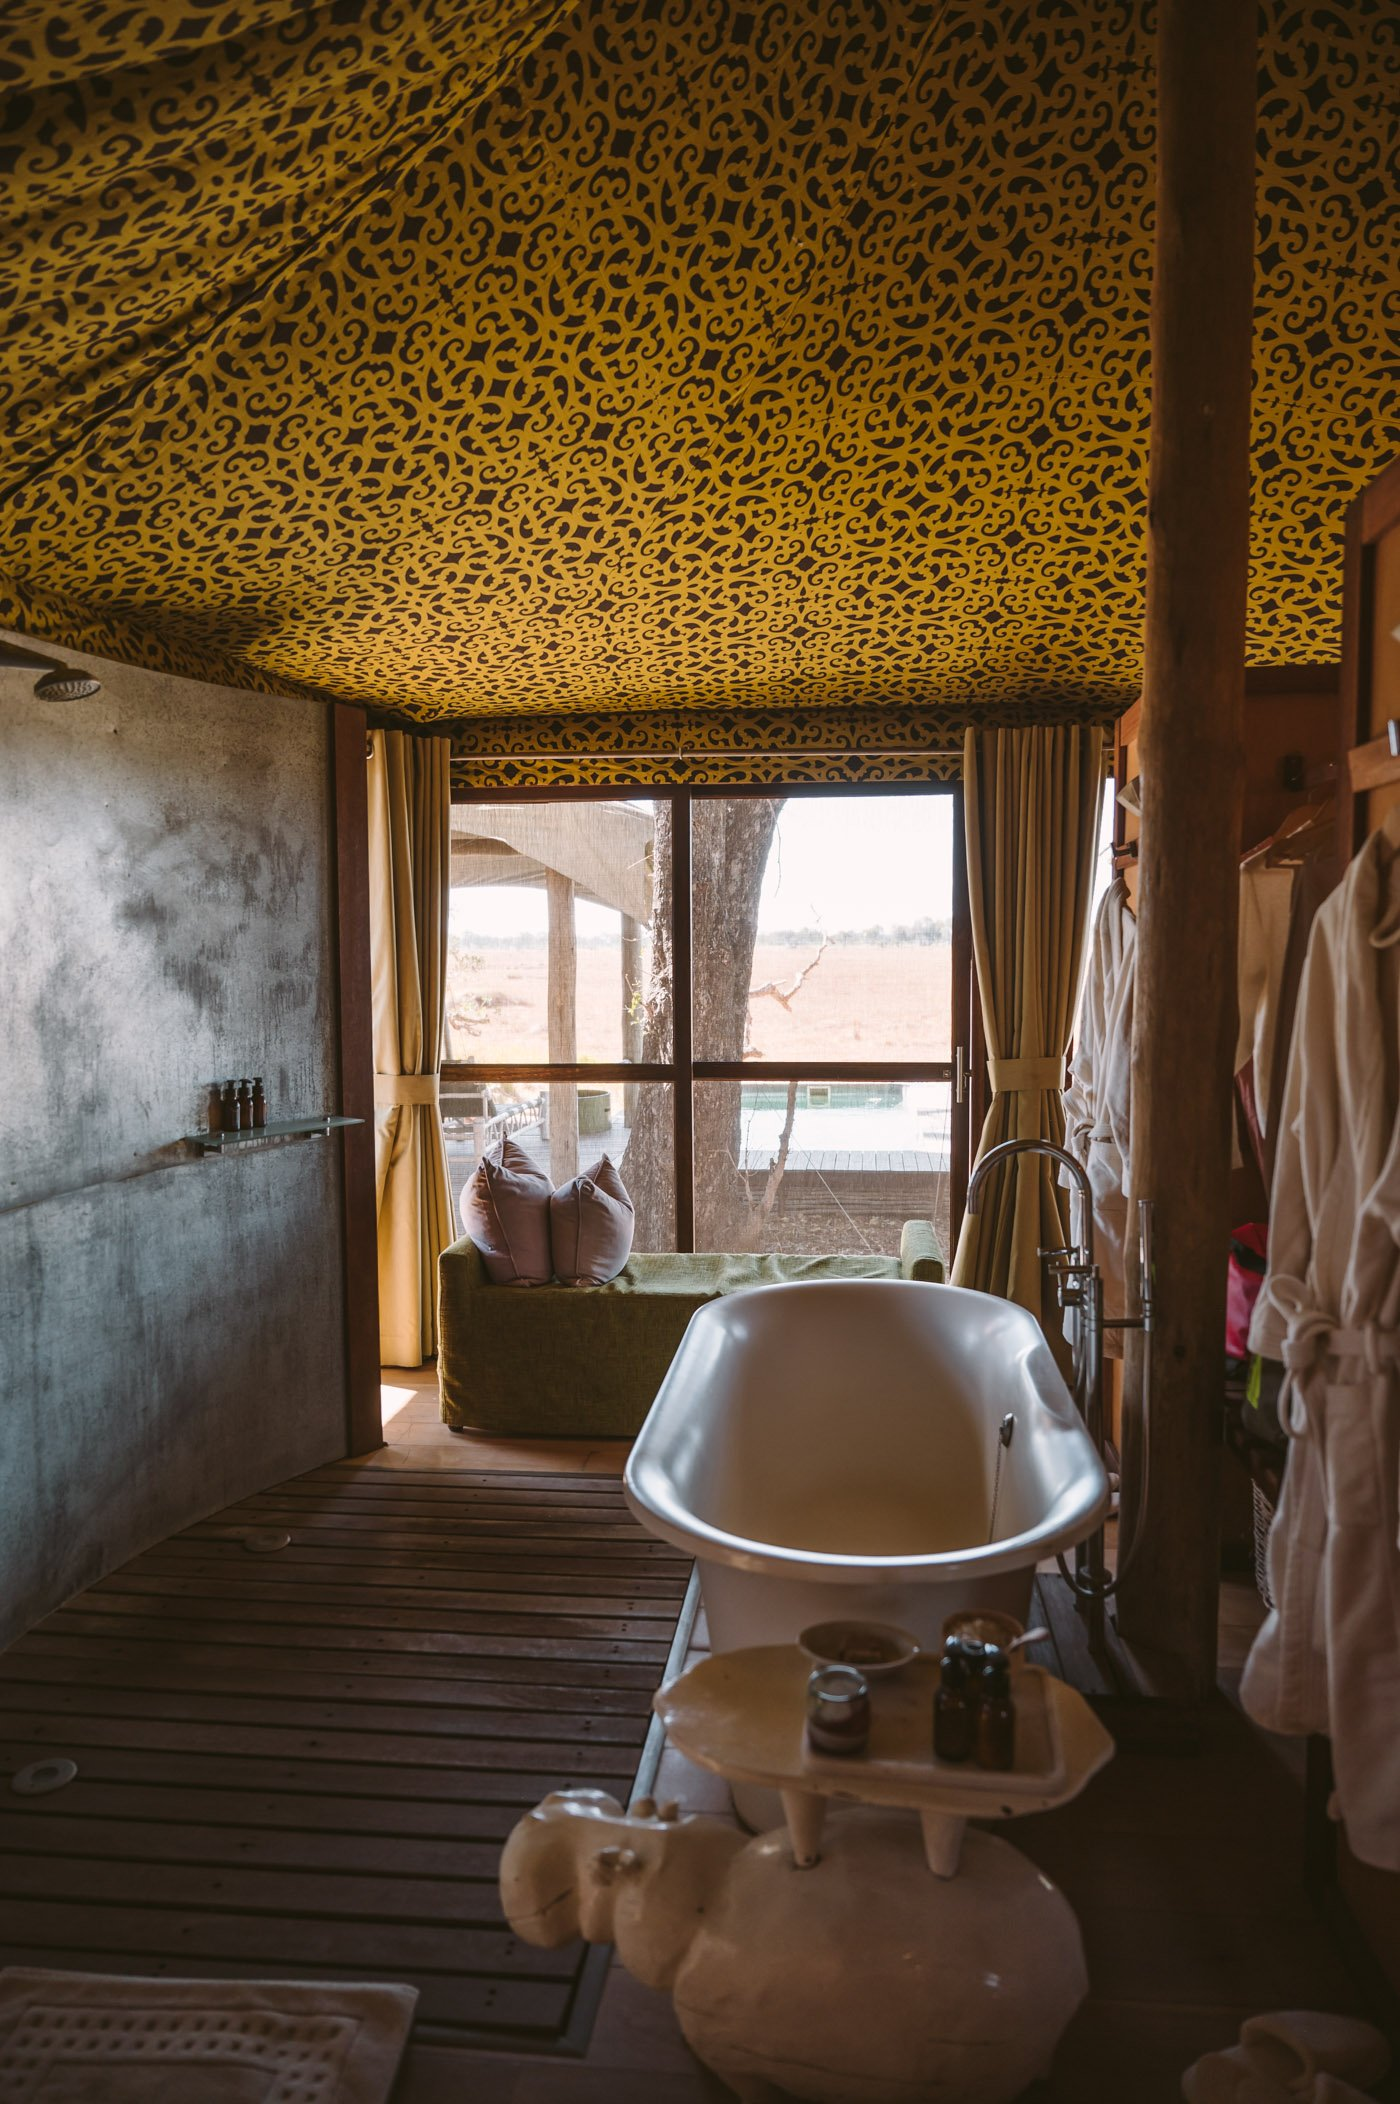 andBeyond Xaranna Okavango Delta Camp bathroom